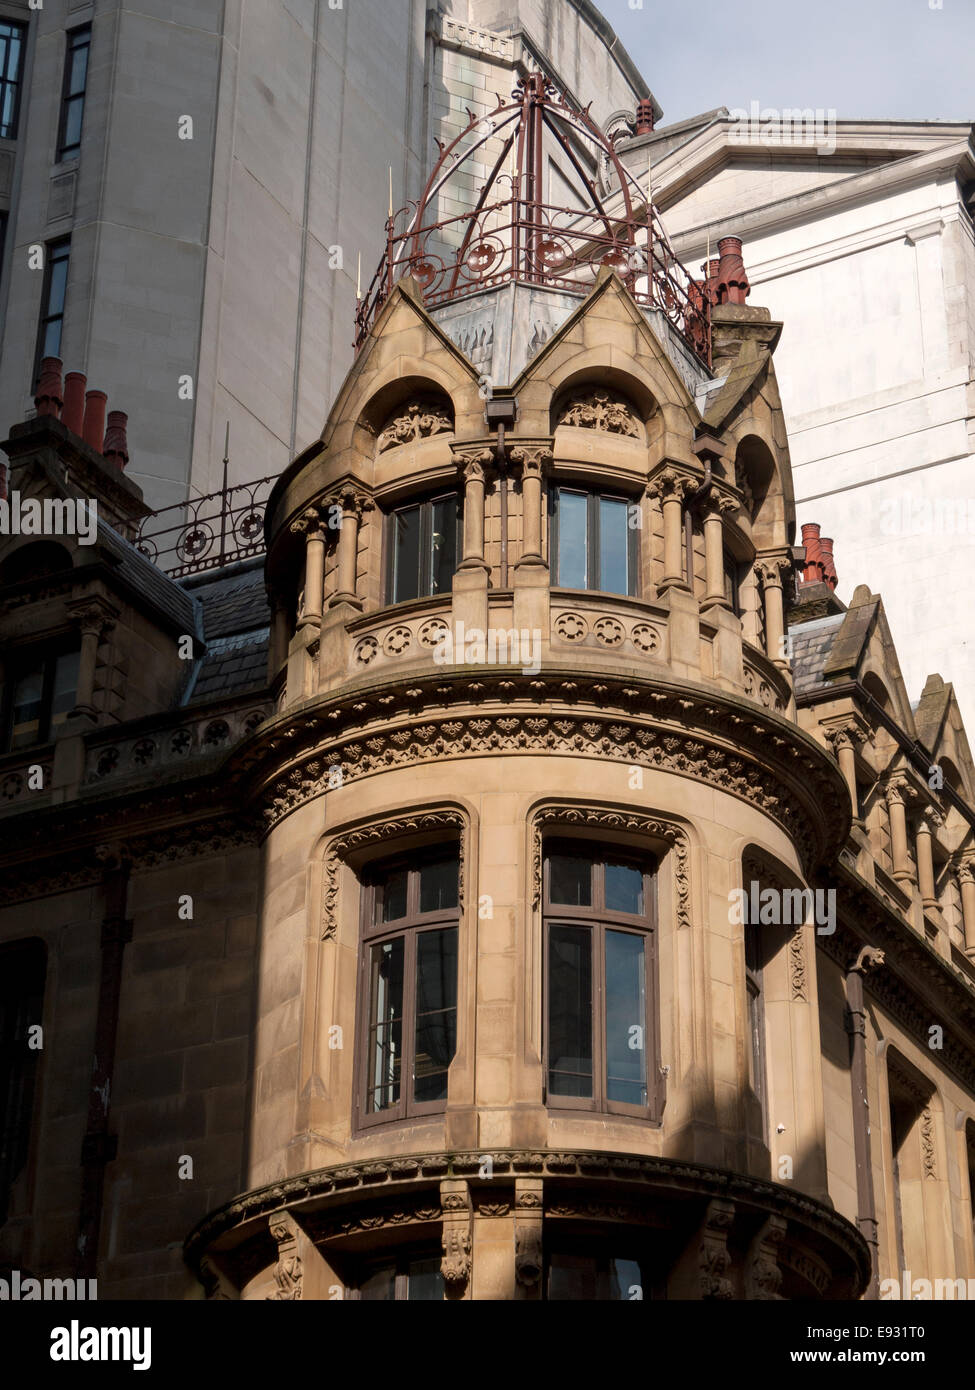 Oriel window on Lombard Chambers, the former Brook's Bank building (George Truefitt 1868). Manchester, England, - Stock Image